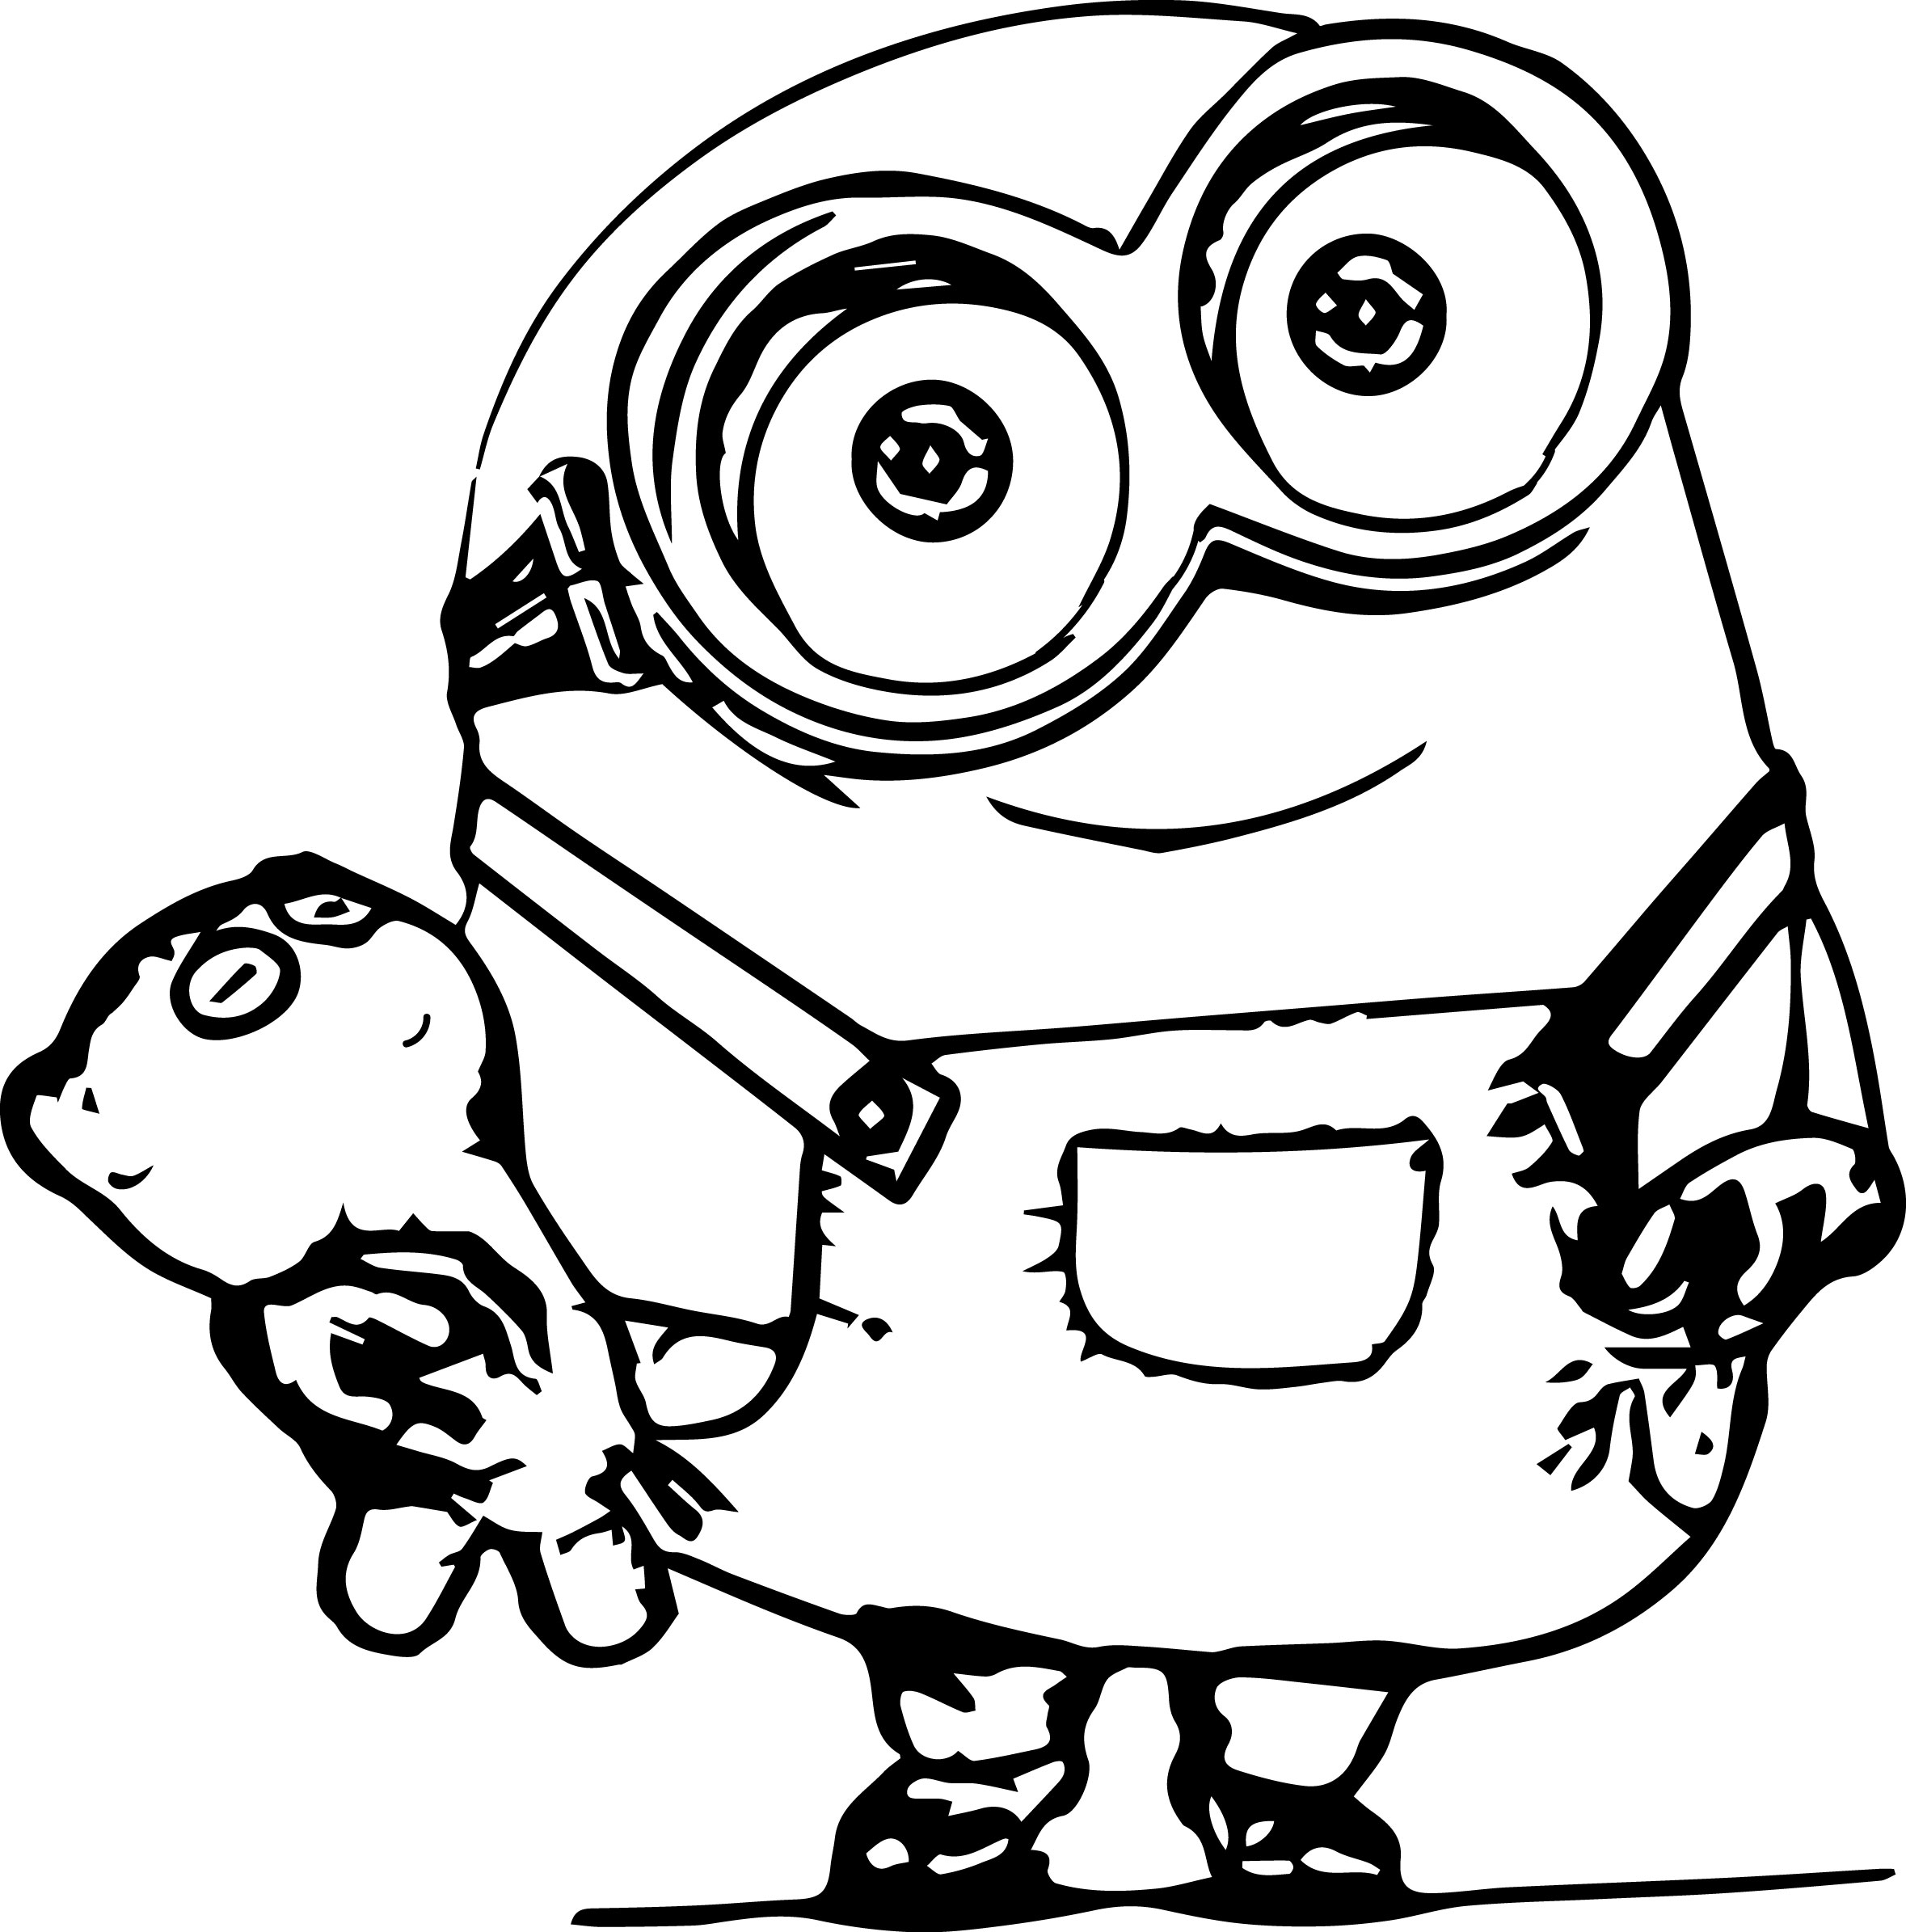 minion pictures to print minion coloring pages best coloring pages for kids to pictures print minion